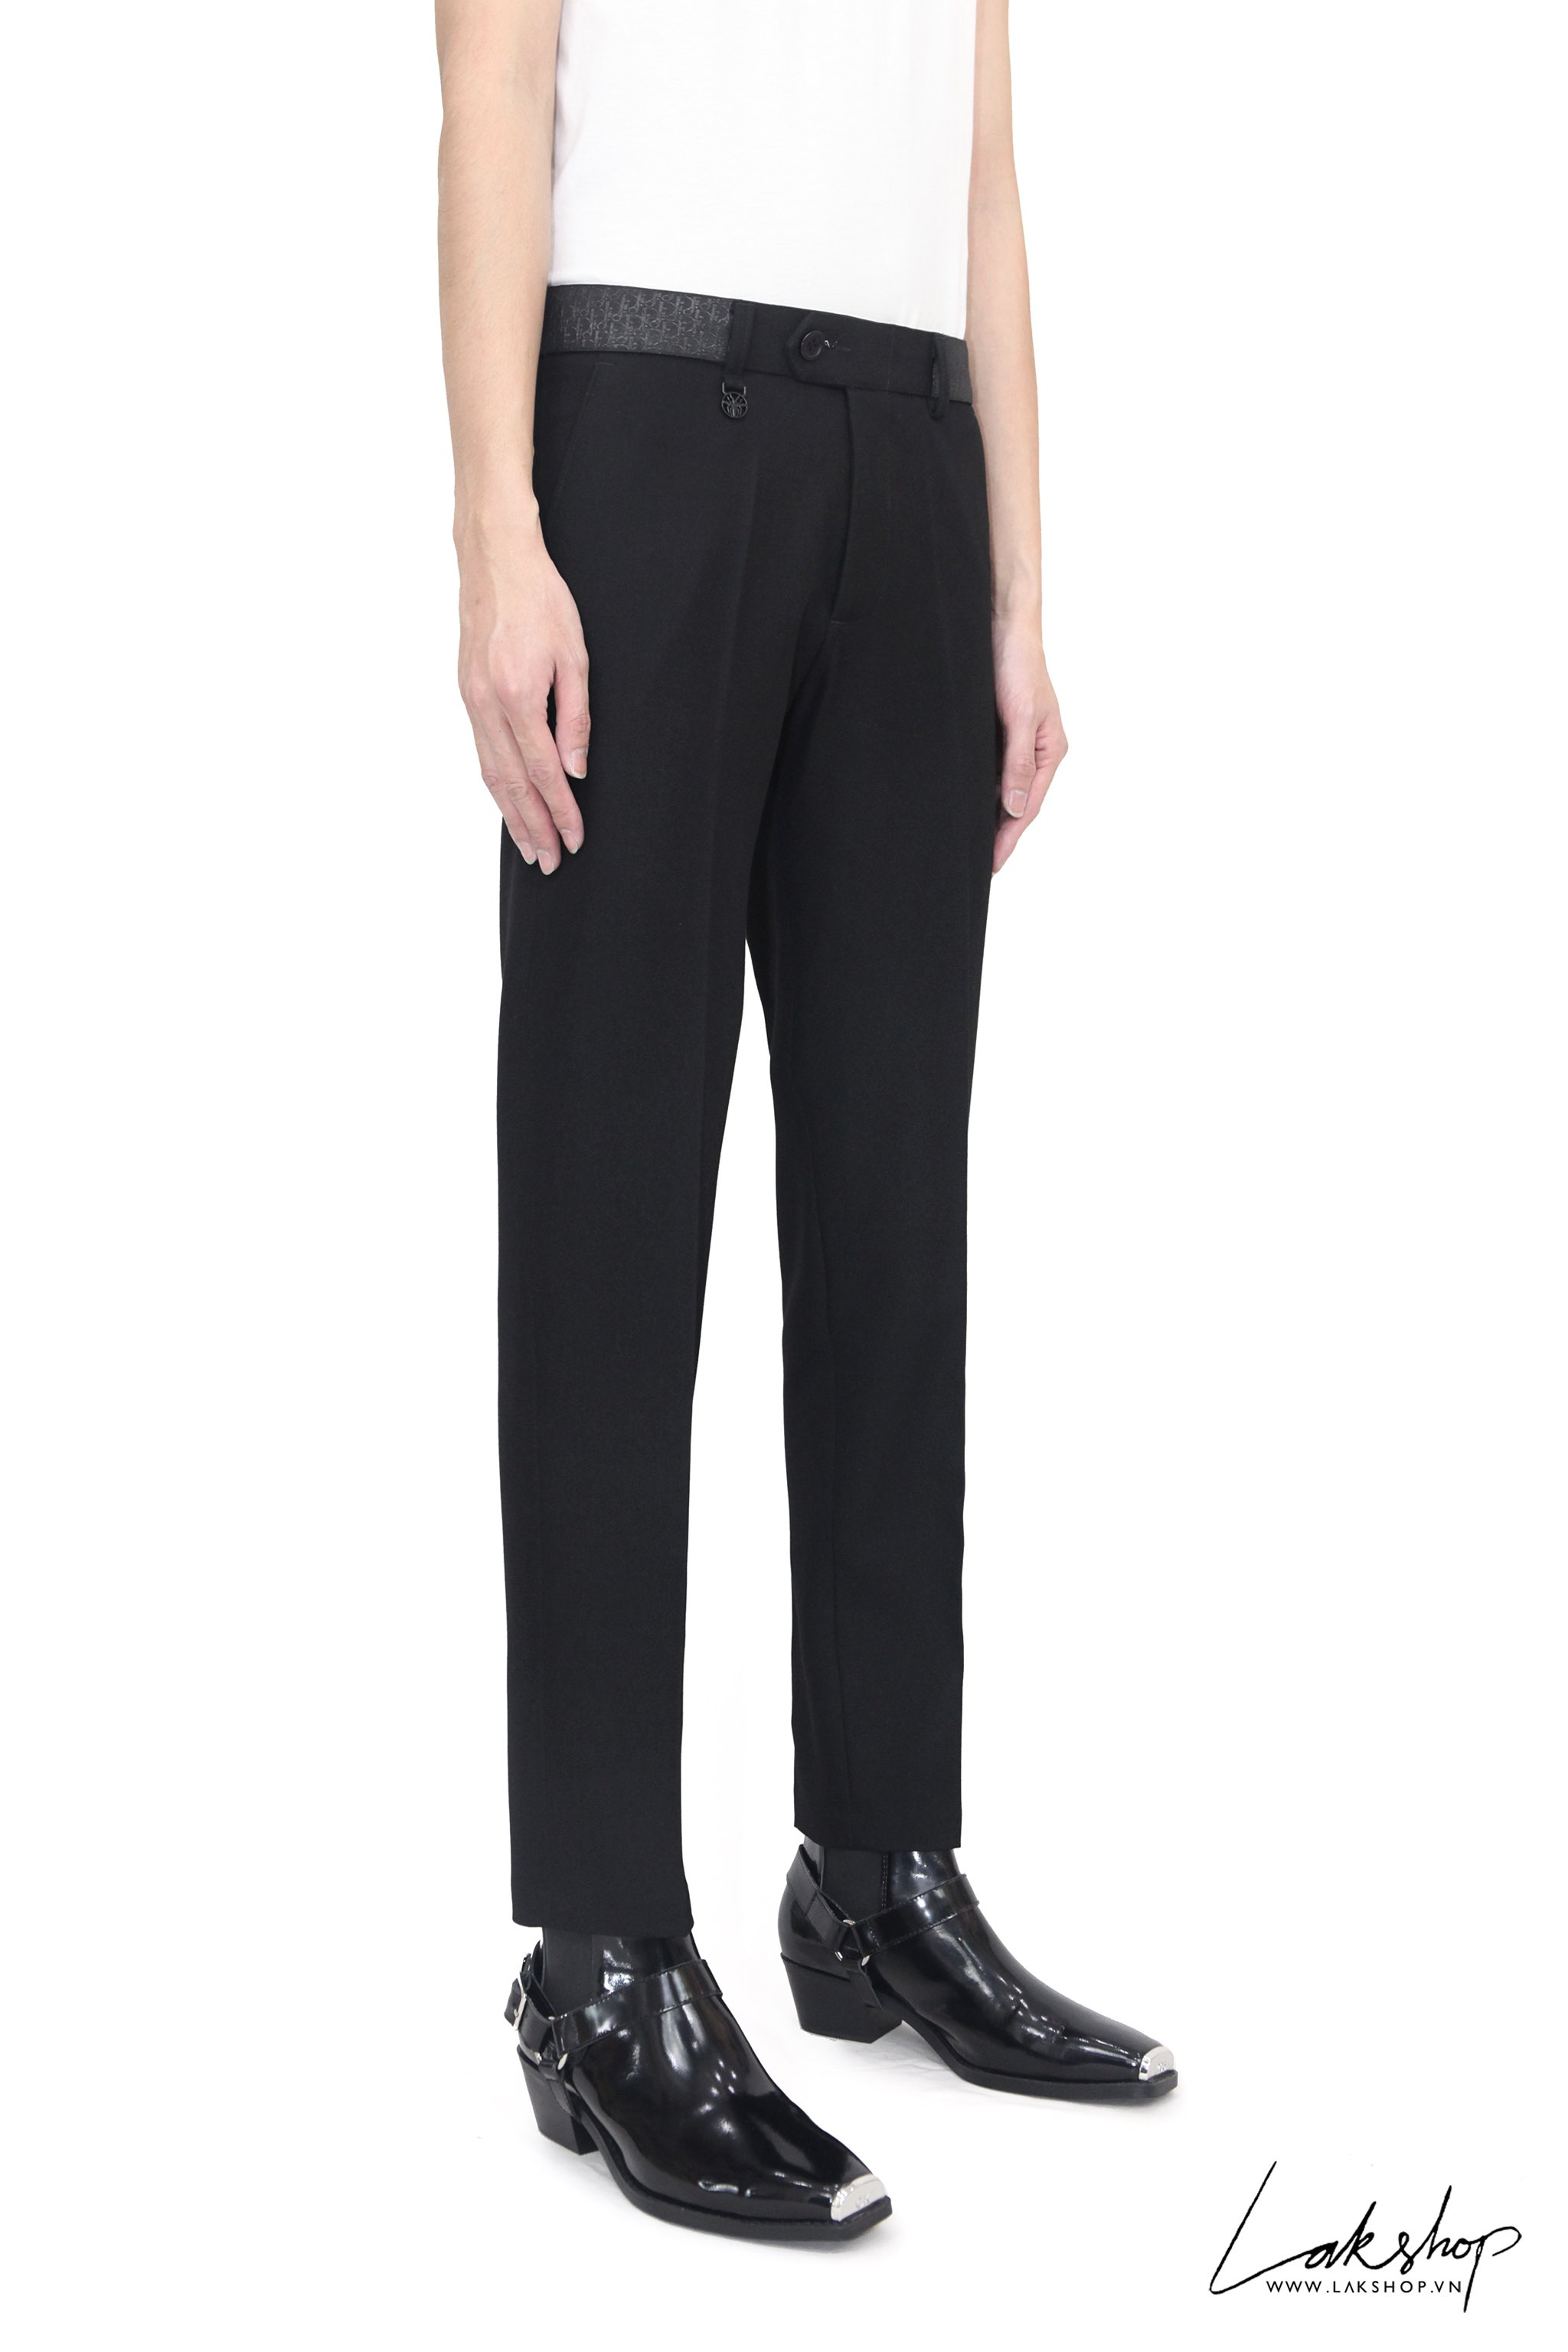 Dior CD Monogram with Waistband Trouser